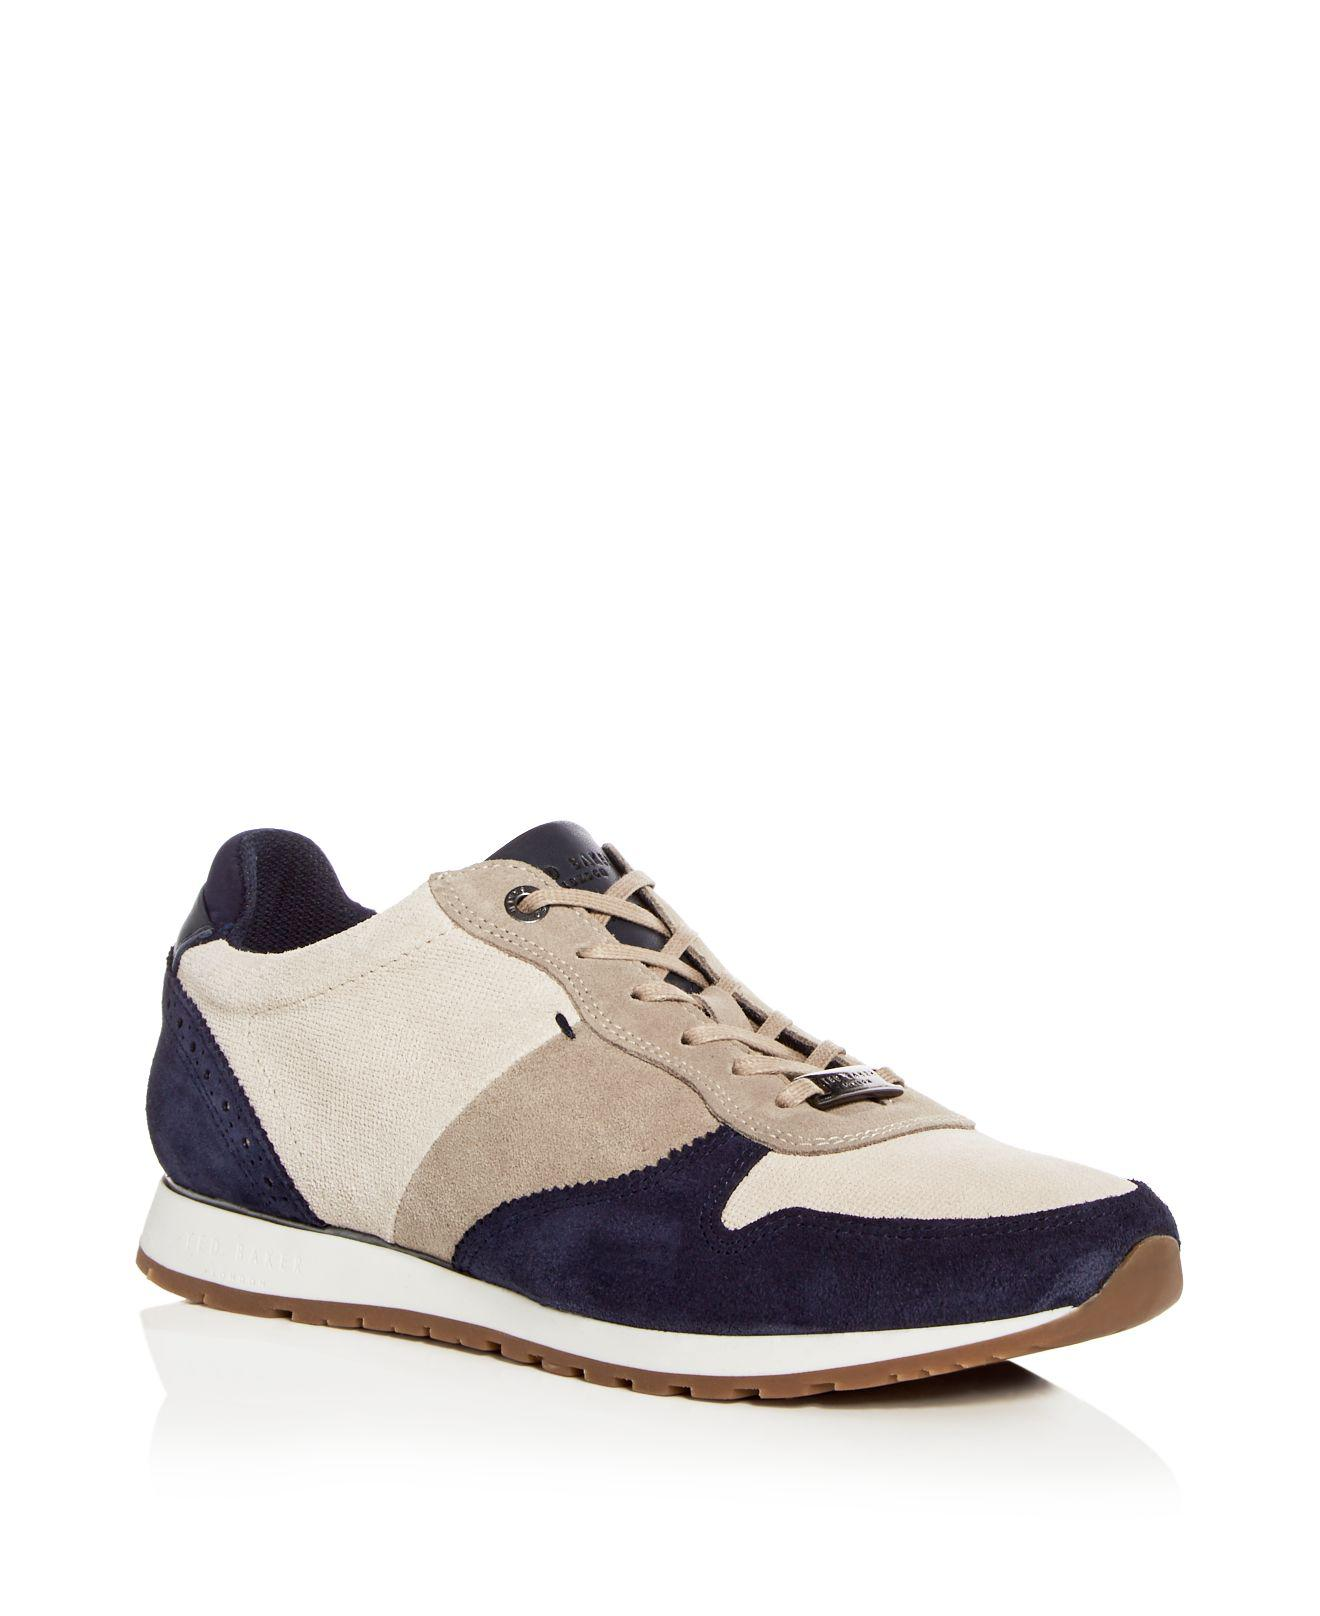 Ted Baker Men's Shindl Suede & Leather Lace Up Sneakers 8aTbiYNwV